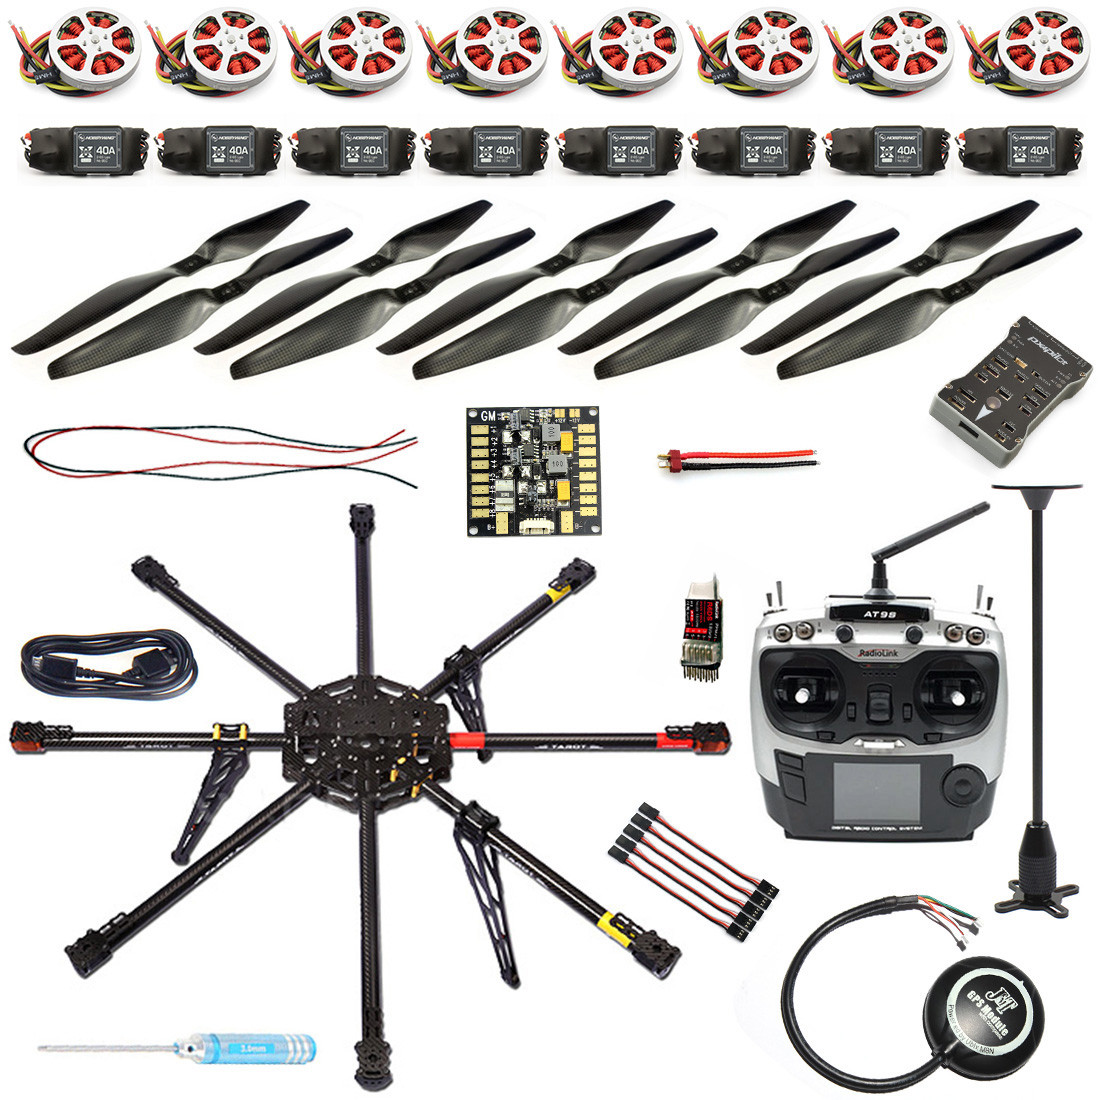 9CH 1000mm Carbon Octocopter Drone Kit With Color LED lamp And Multi Tone Buzzer Interface 1